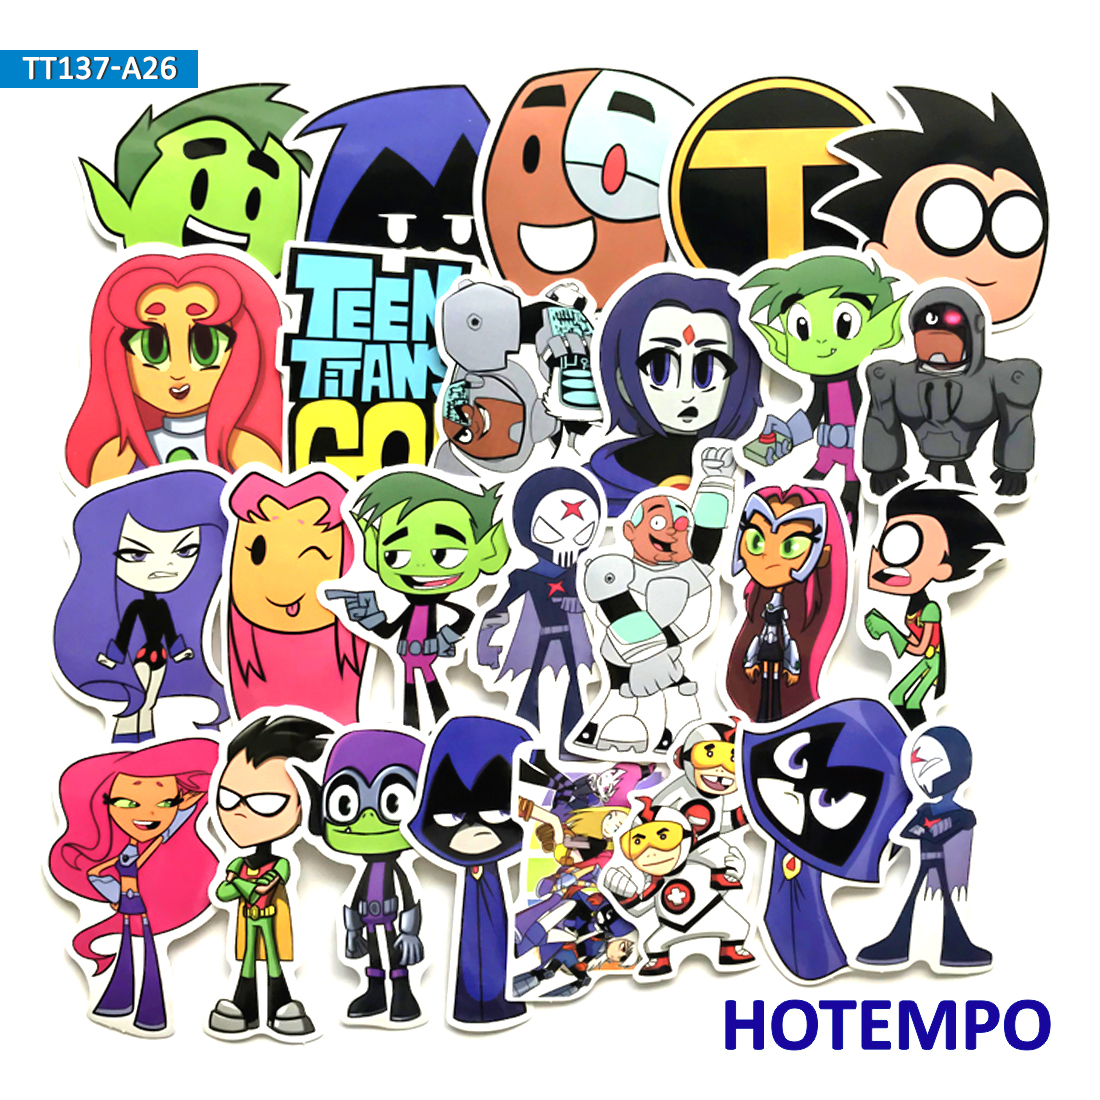 26pcs Funny Teen Titans Go Cartoon Stickers for Scrapbooking Mobile Phone Laptop Luggage Guitar Skateboard Bike Car Stickers